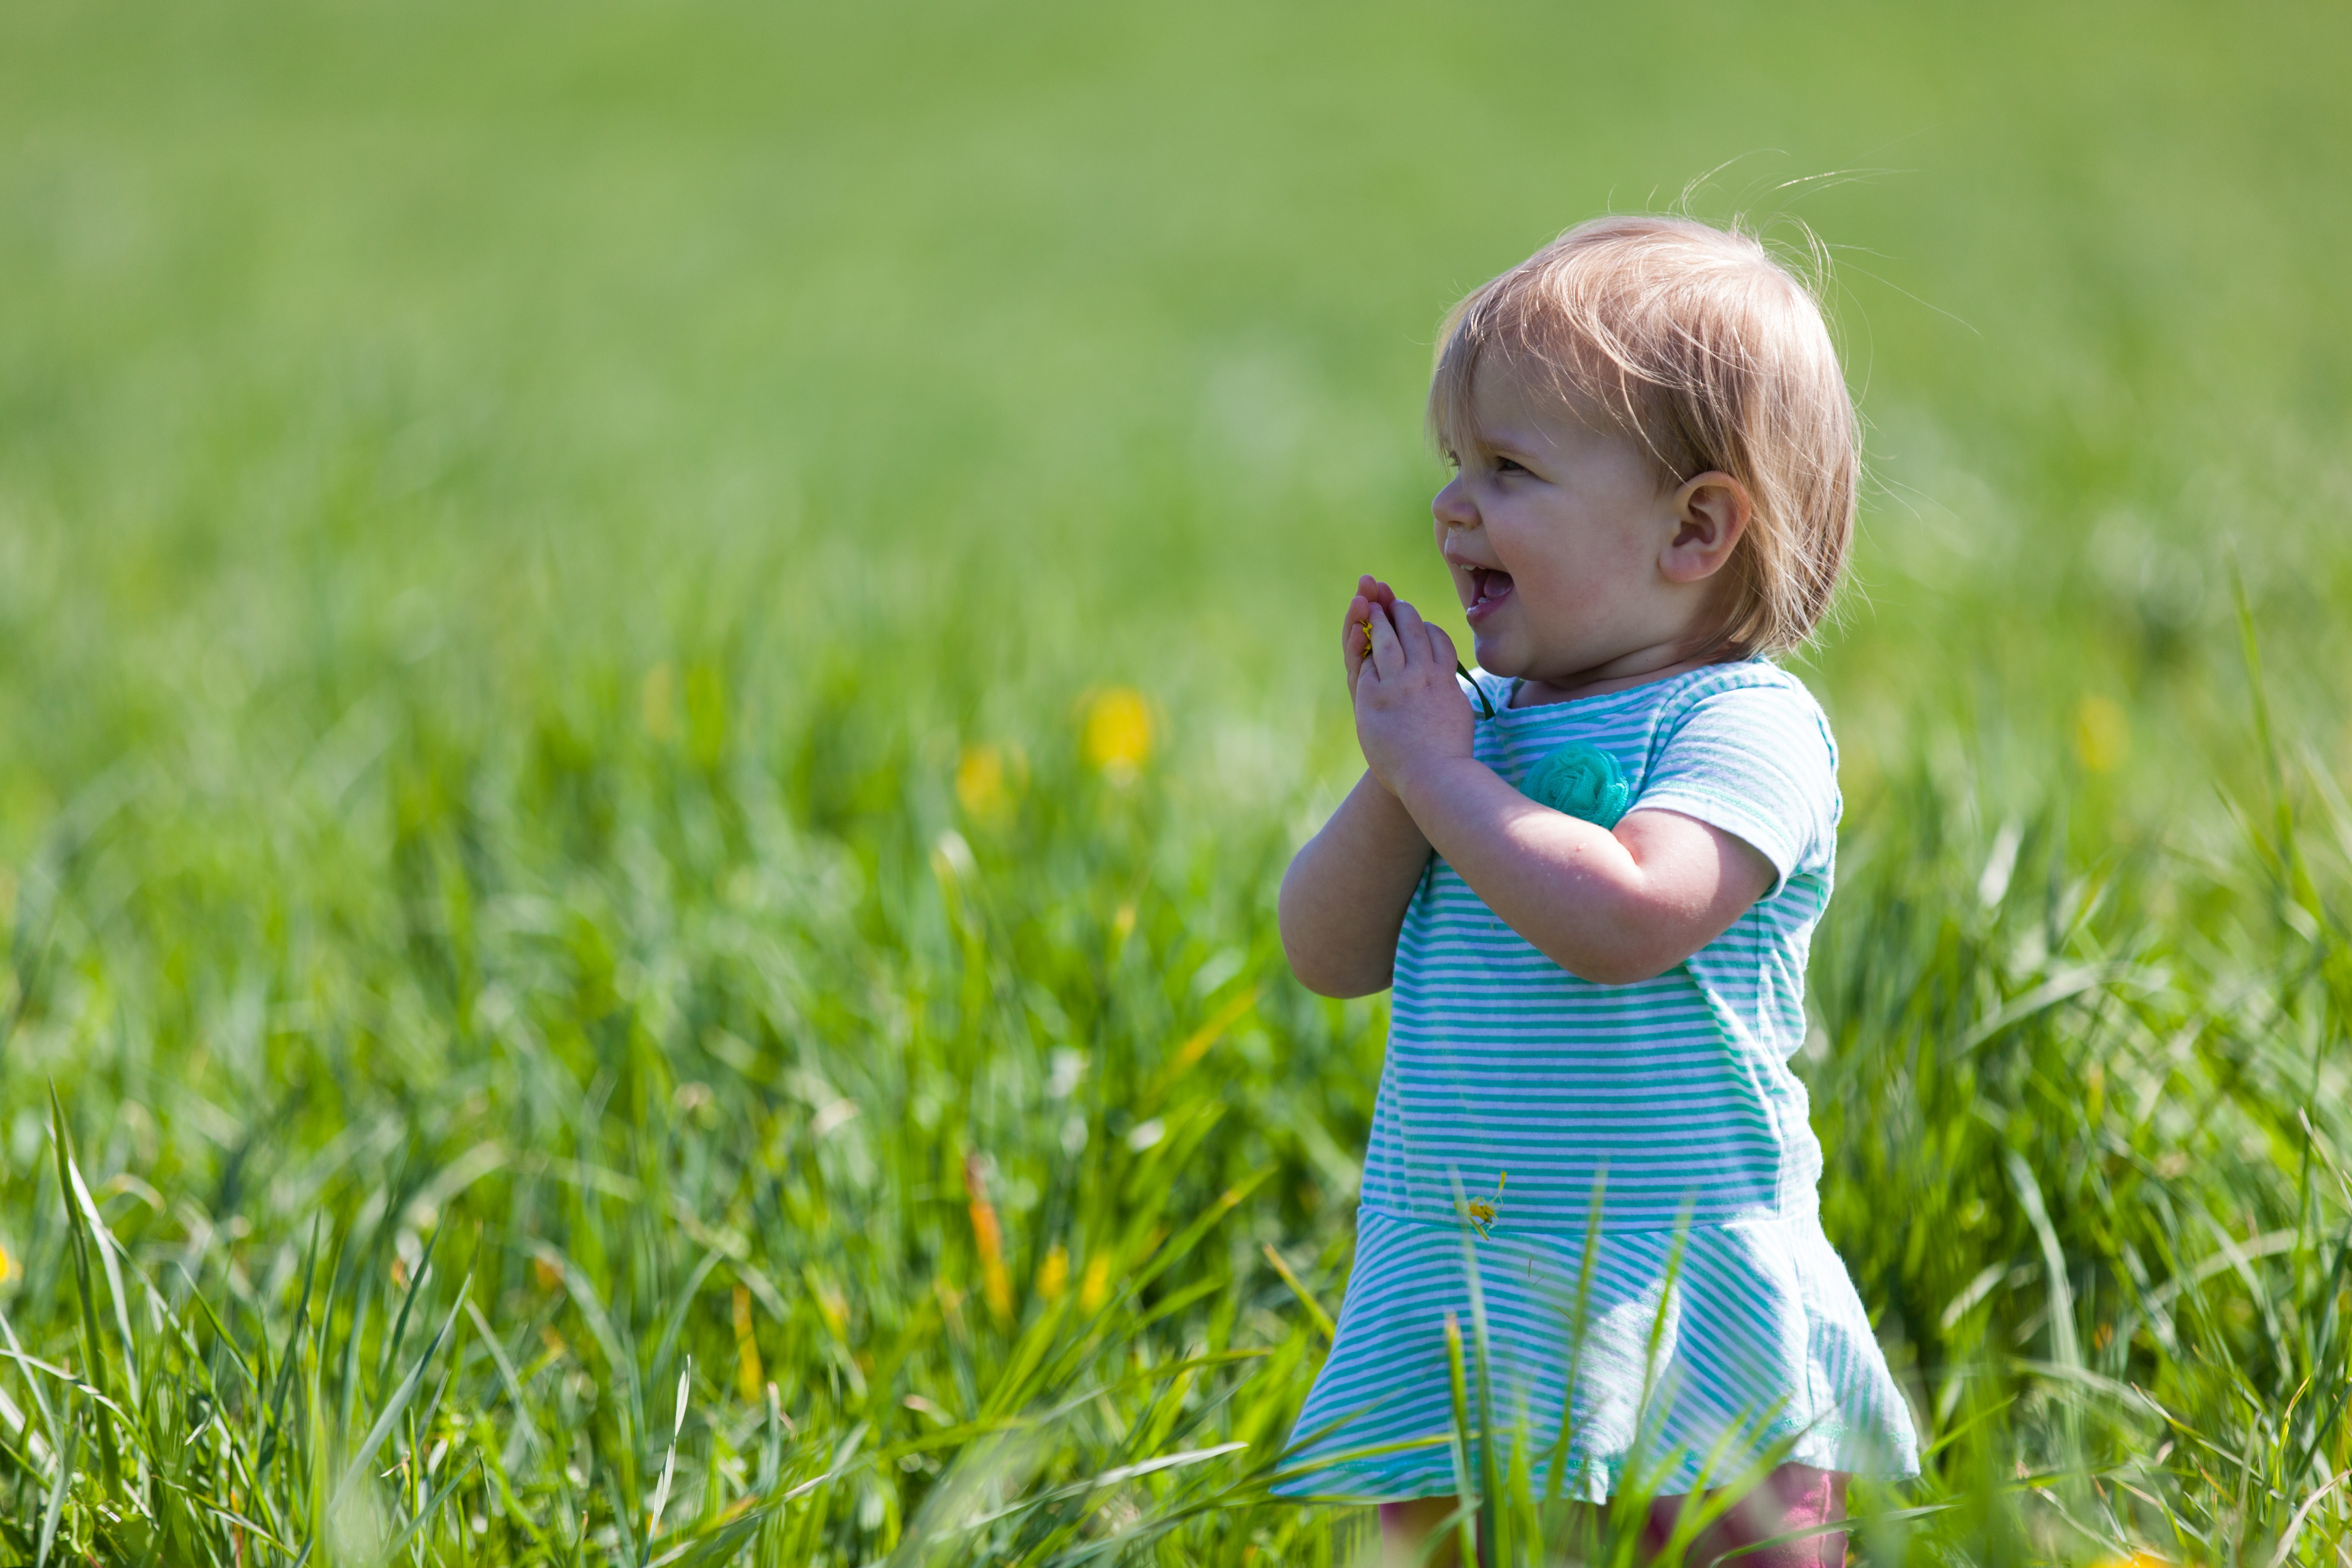 Happy toddler outdoors surrounded by grass